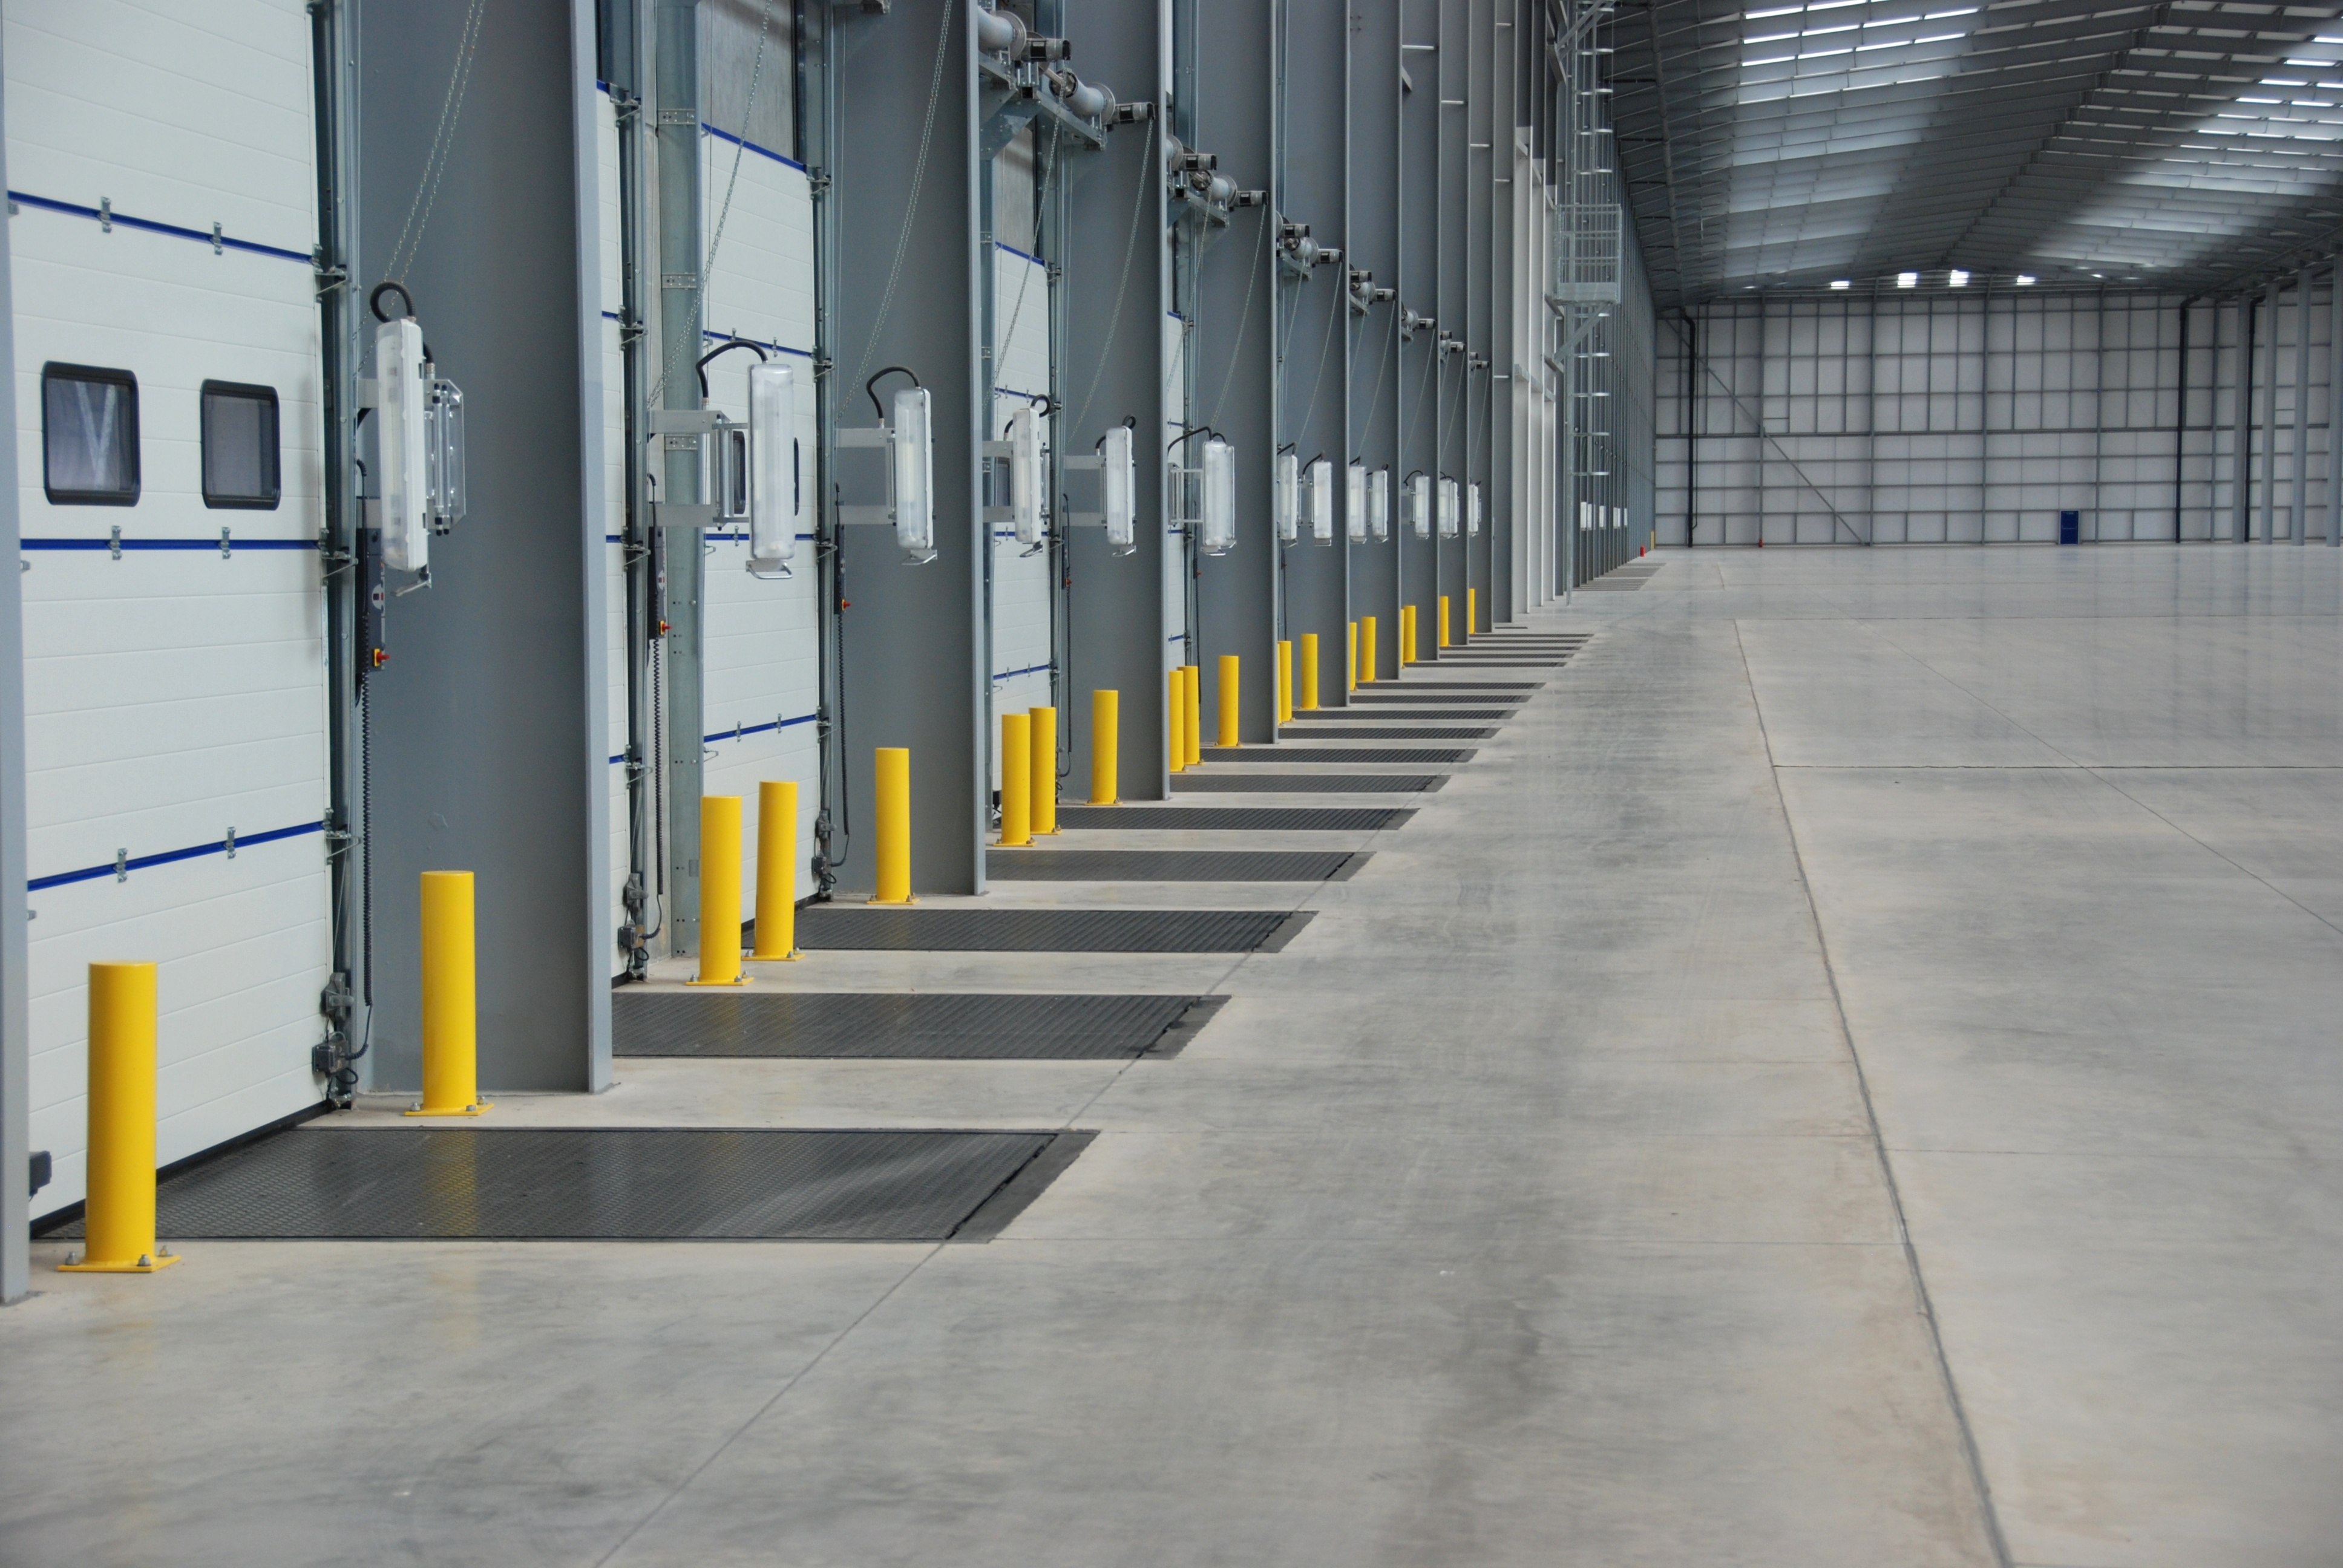 About Permaban | Industrial Concrete Flooring Products - Permaban